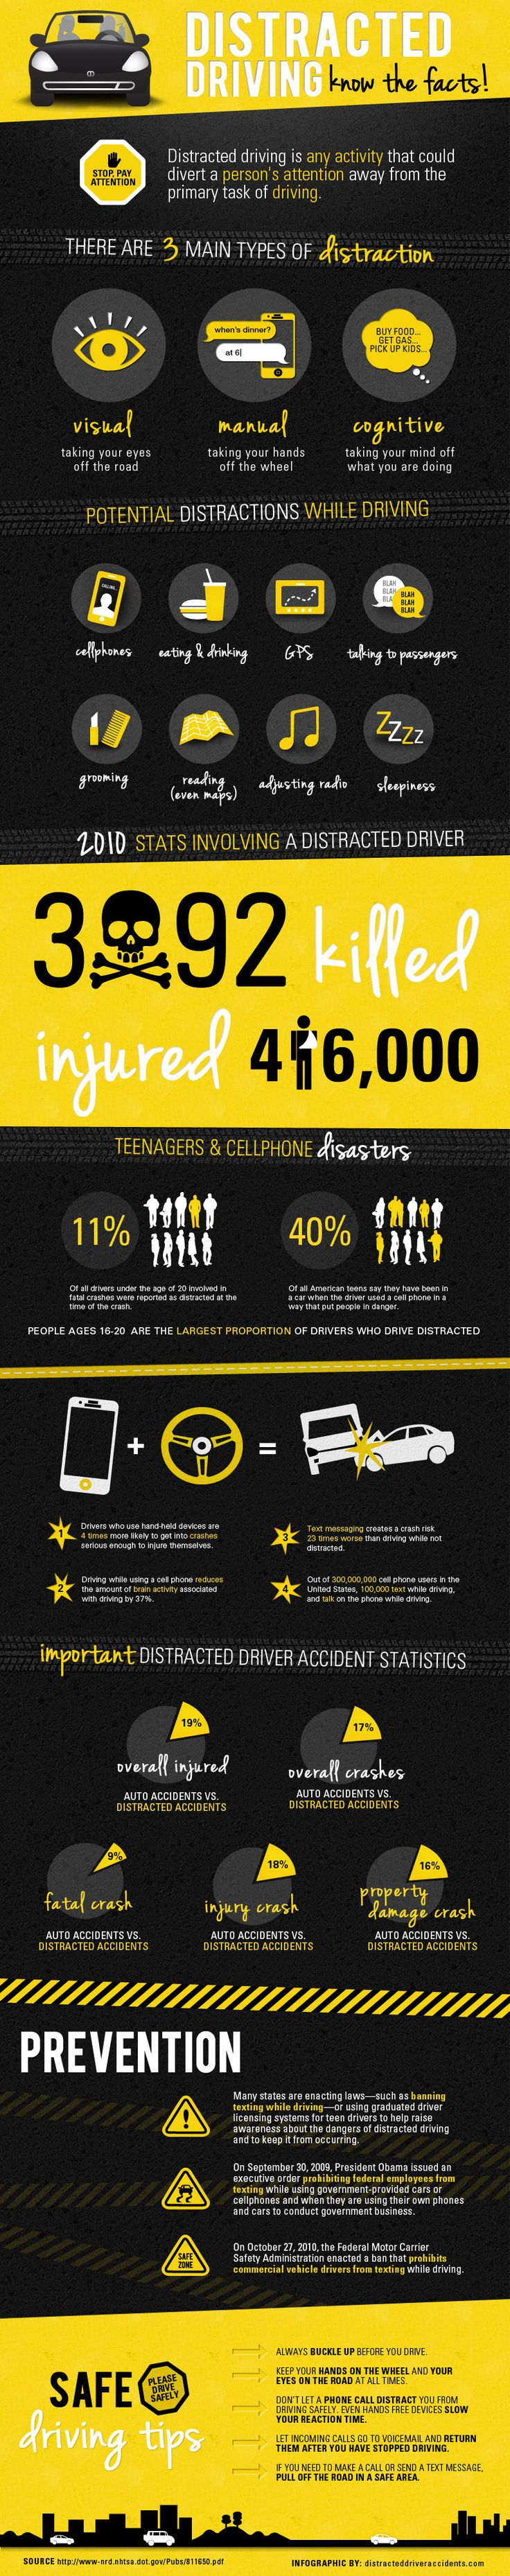 Dangers of distracted driving infographic distracted driver accidents